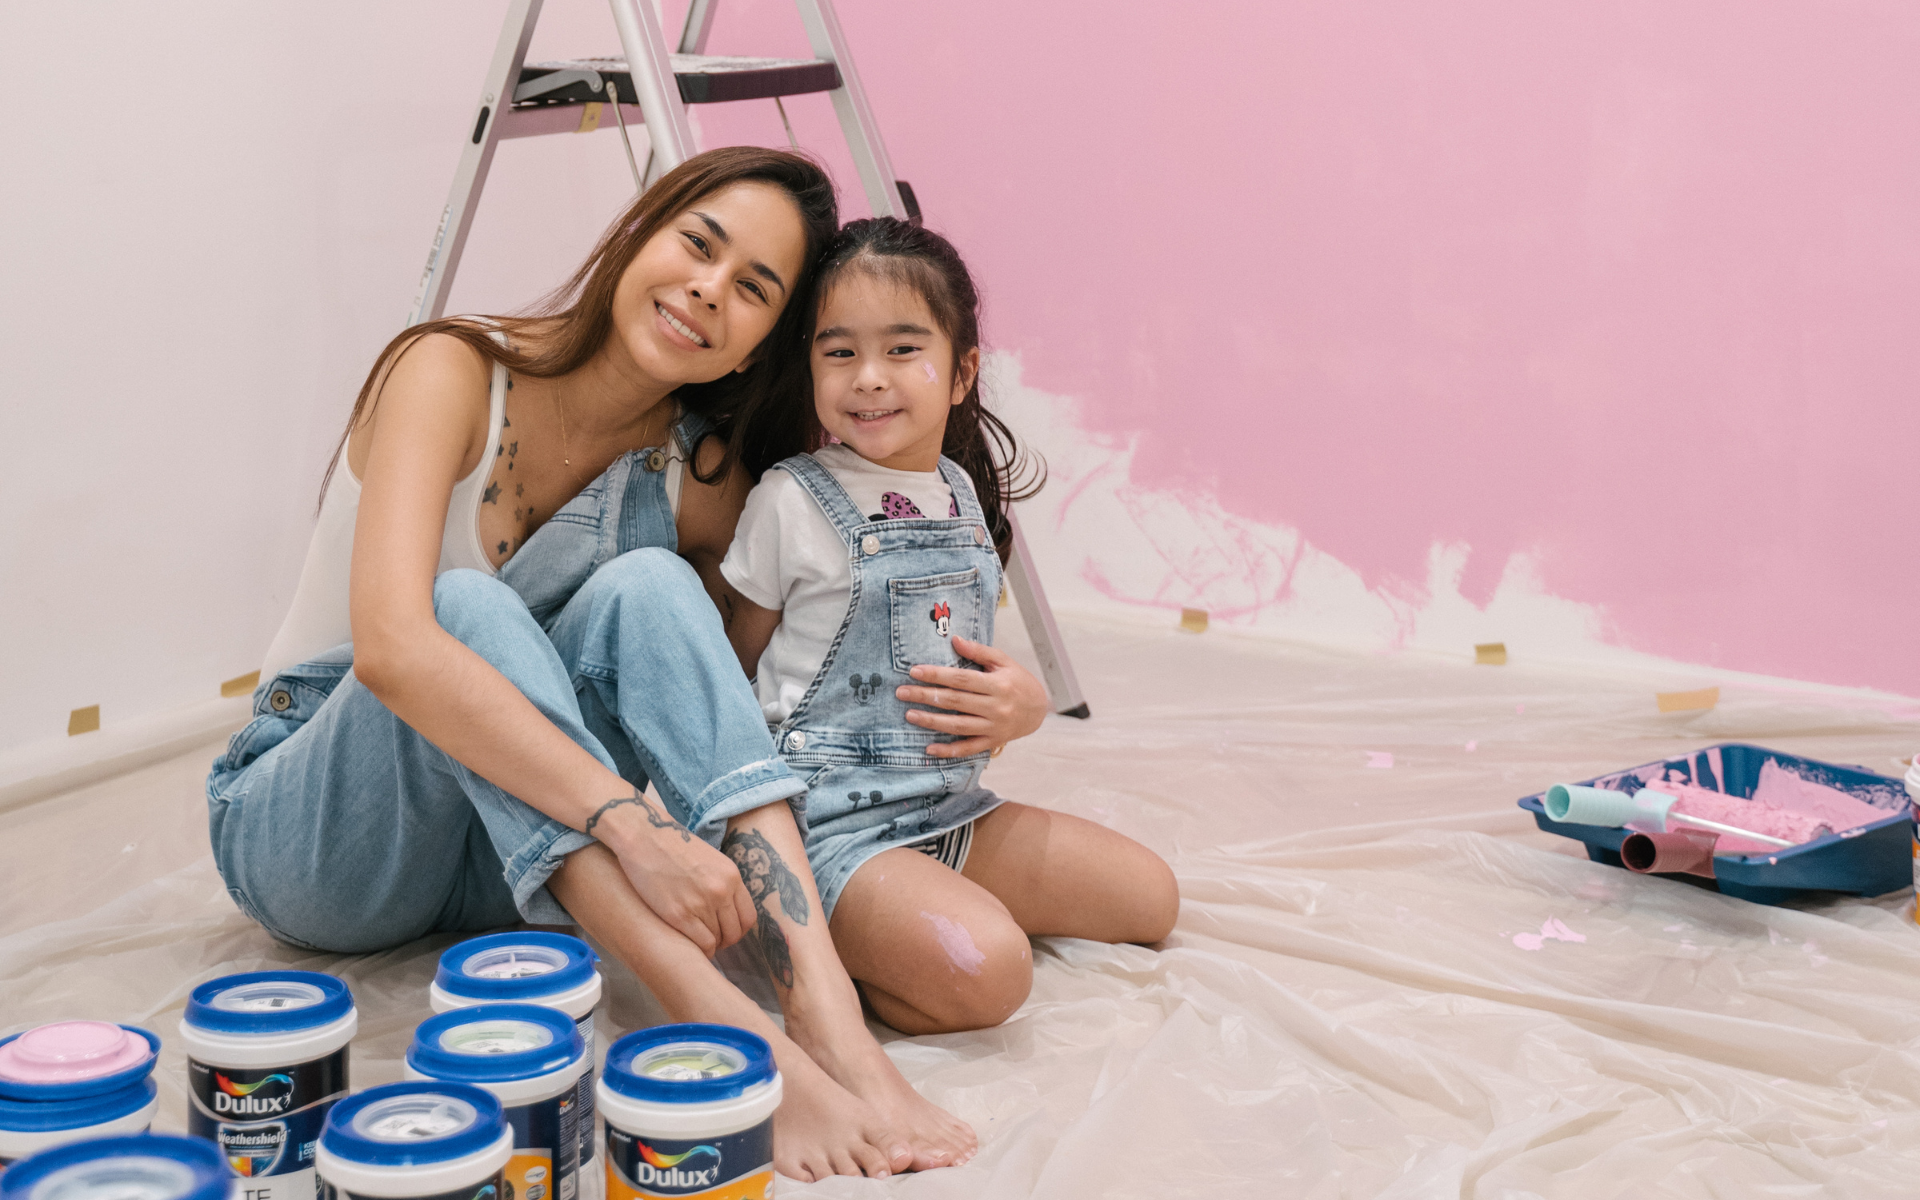 Dulux's New EasyClean™ Protects Against Common Household Stains And Bacteria